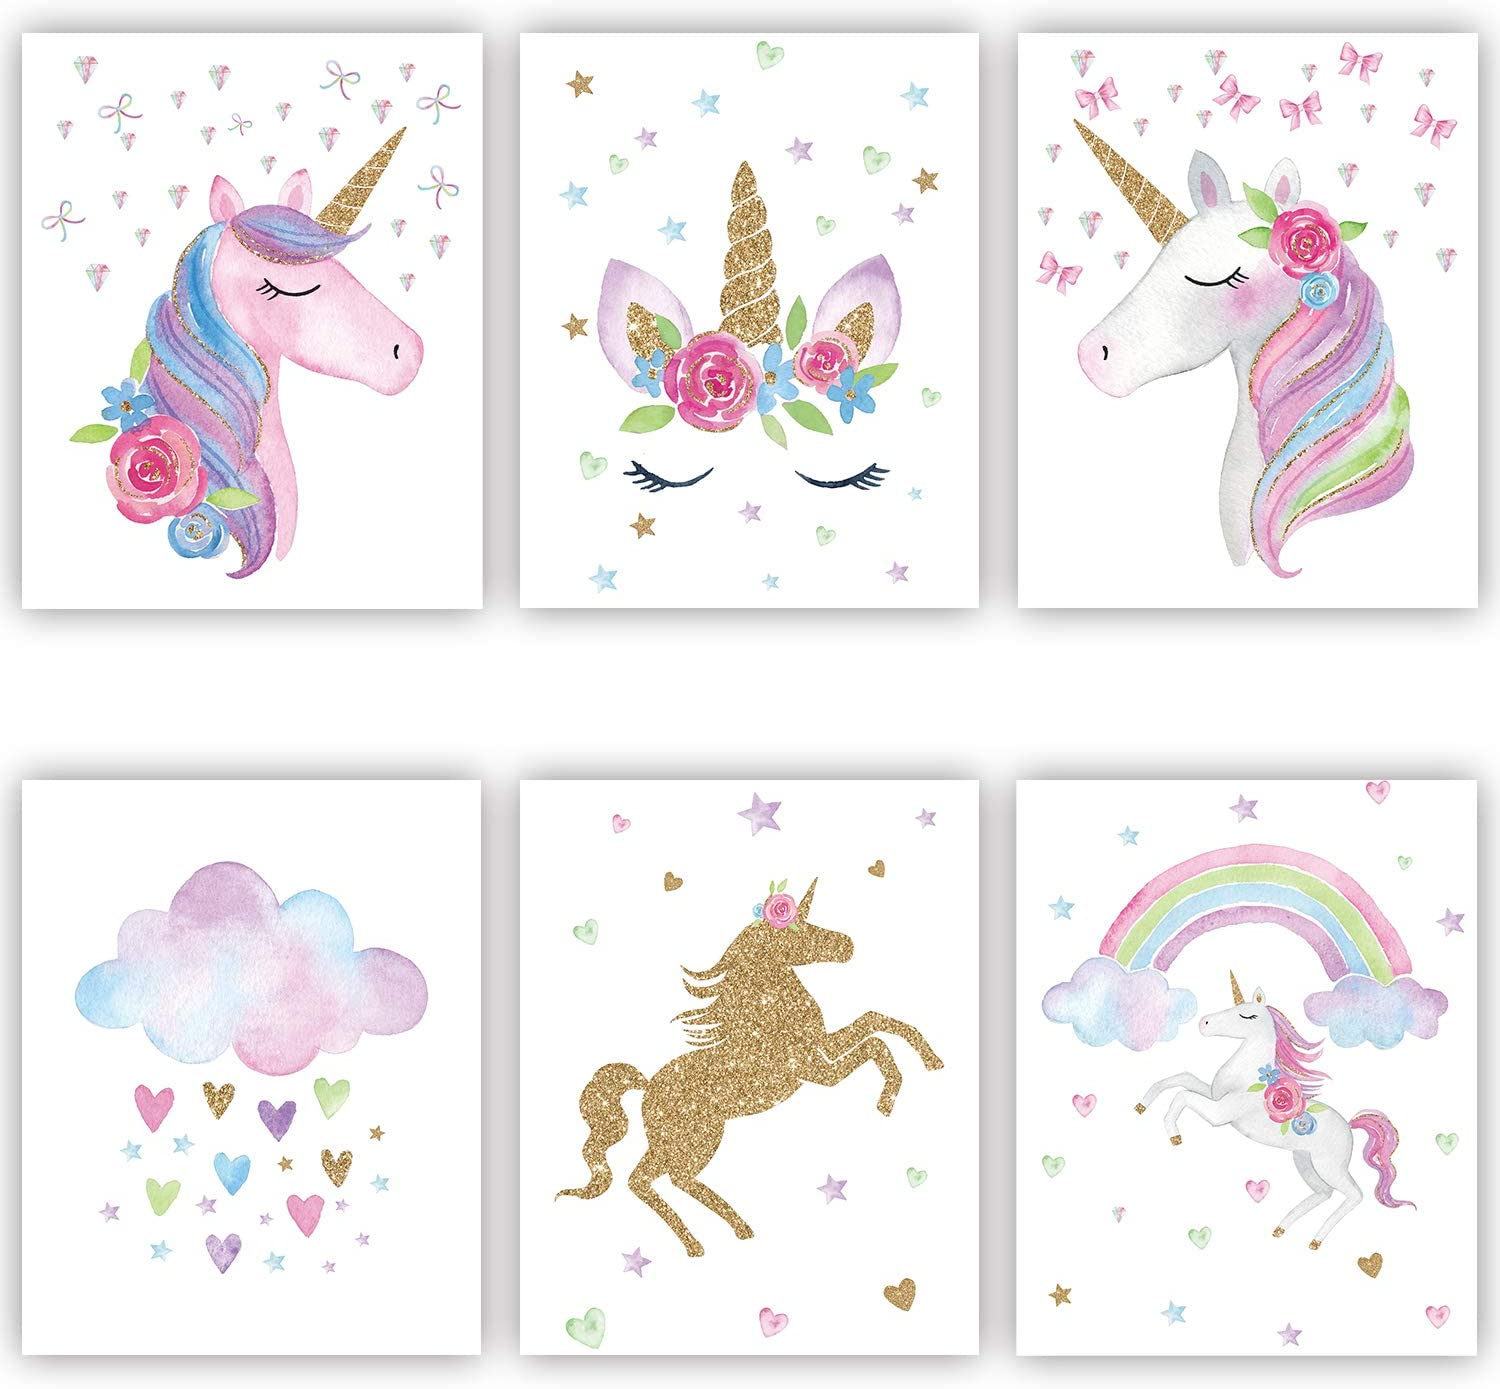 Rainbow Unicorn Canvas Print Wall Art for Girls Kids Bedroom Nursery Painting Cute Posters 6 Pieces 8x10 Inch No Frame